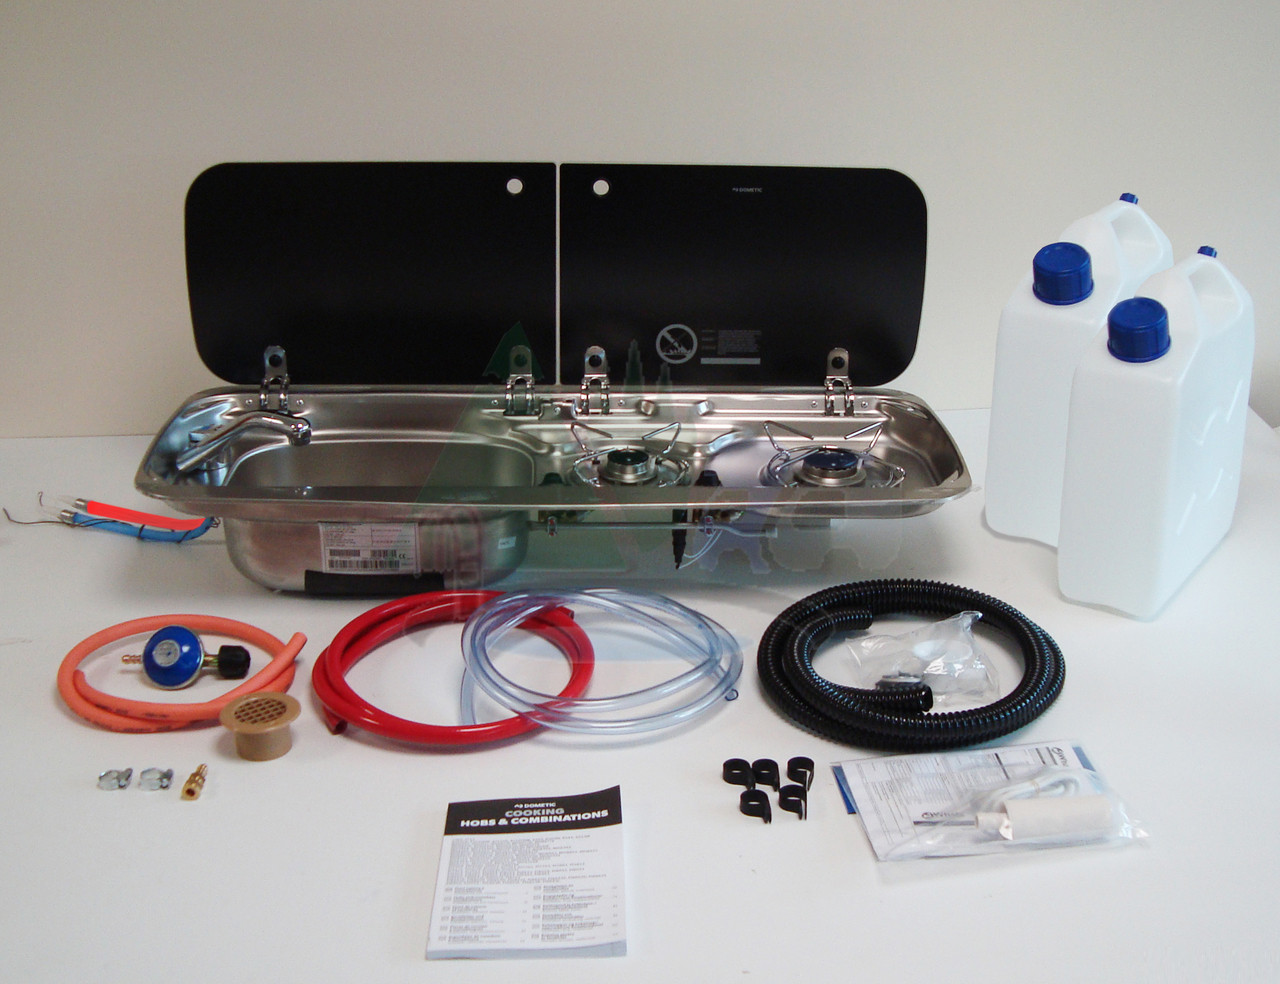 Dometic Smev 9222 Motorhome Conversion Kit 1 Hob and Left Hand Sink (*Image shows kit with Gaz Regulator and Mixer tap options)